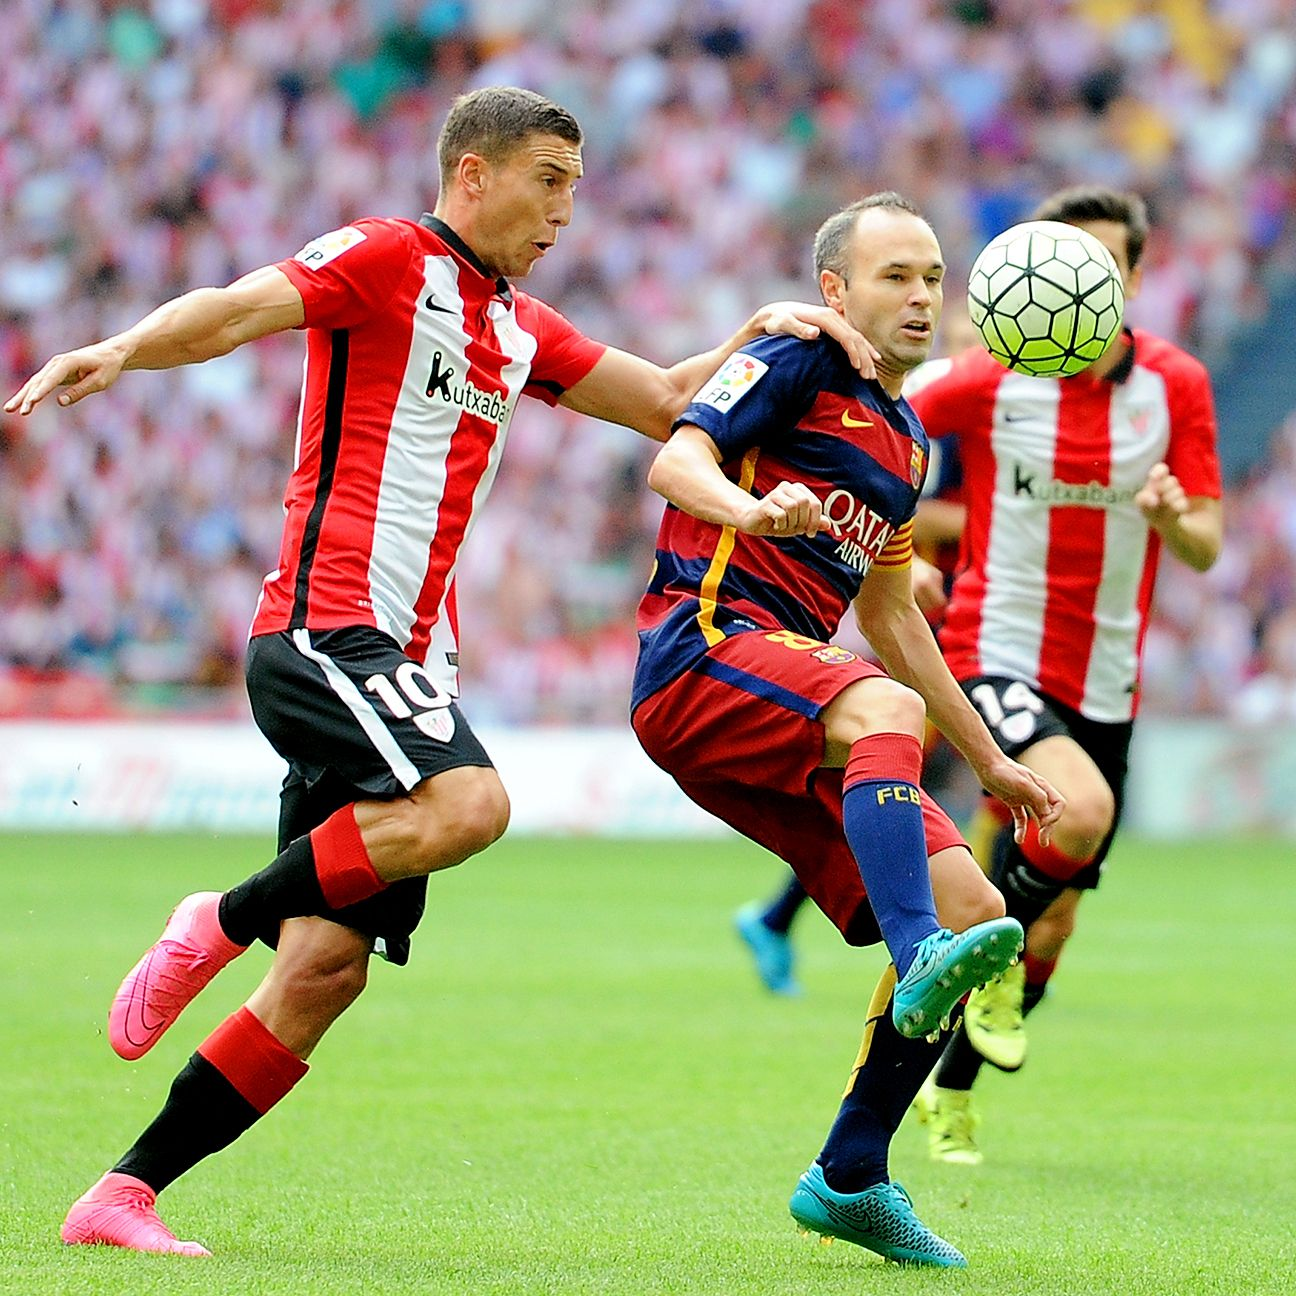 After being humbled by Athletic in the Spanish Super Cup, Andres Iniesta and Barcelona turned the tables on the Basques with a 1-0 win on Sunday.